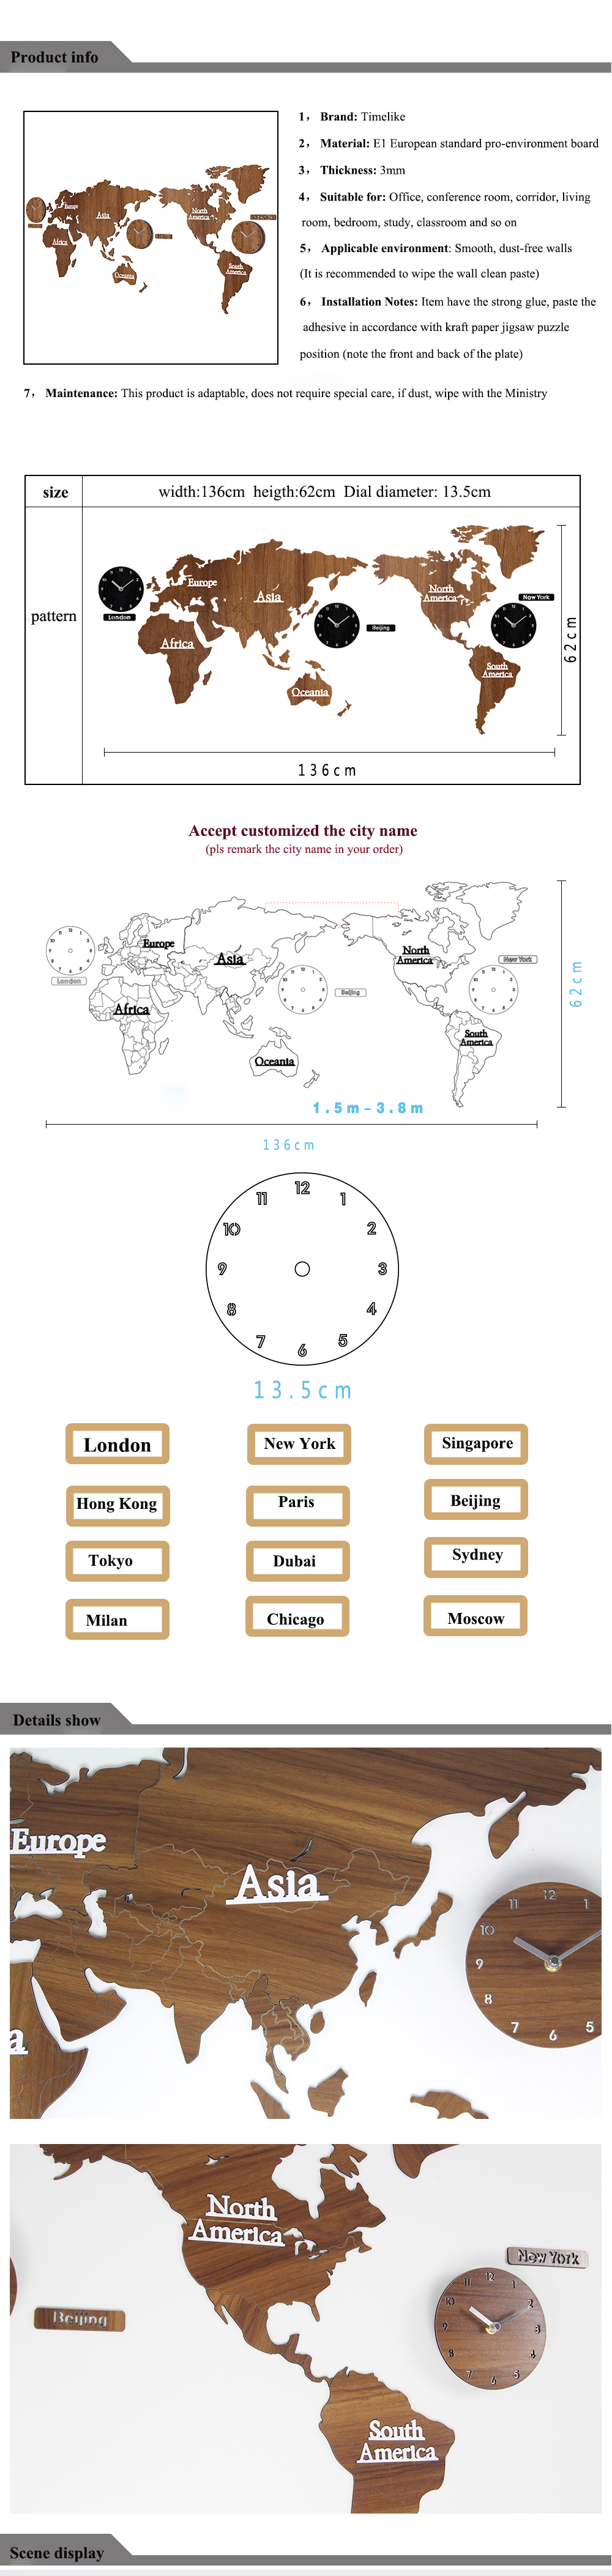 Creative world map wall clock wooden large wood watch wall clock zinc manganese dry battery will be better used in this clock color as the option pic showed material wood size137x63cm feature needle gumiabroncs Images